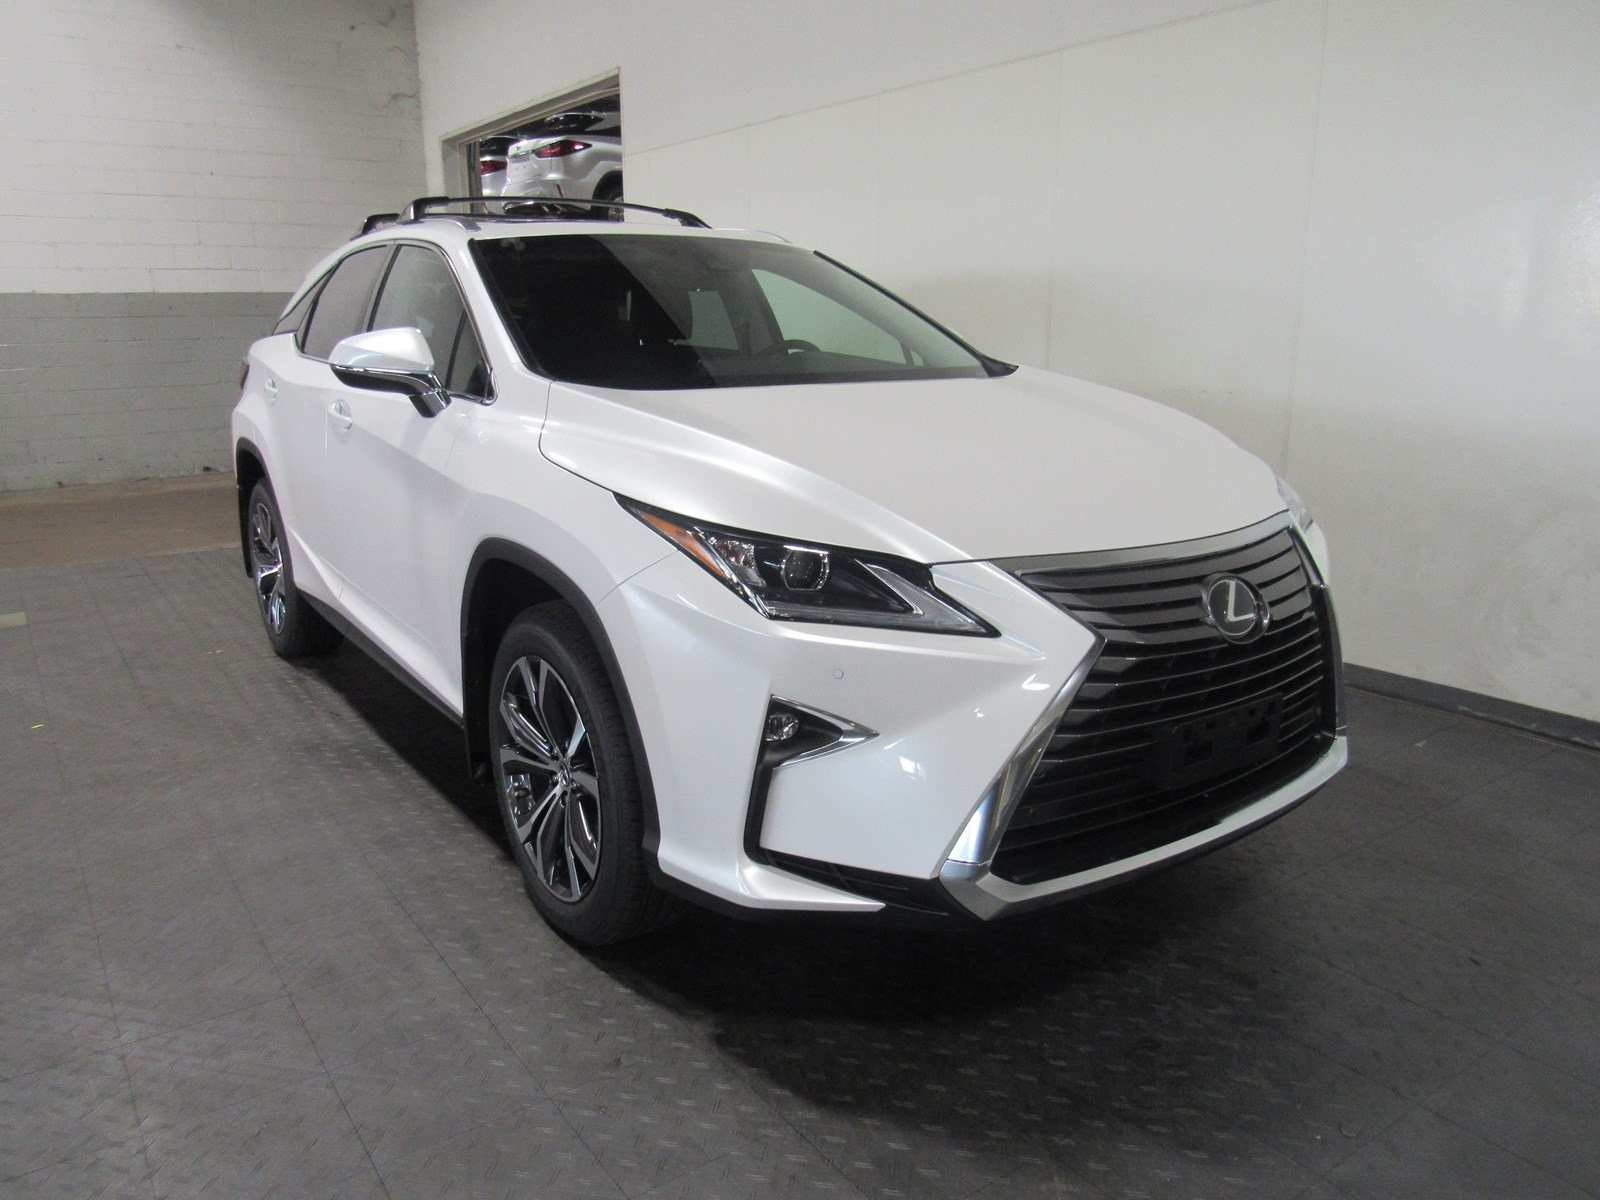 26 Best Review New Lexus Rx 350 Redesign 2019 Release Specs And Review Release Date for New Lexus Rx 350 Redesign 2019 Release Specs And Review